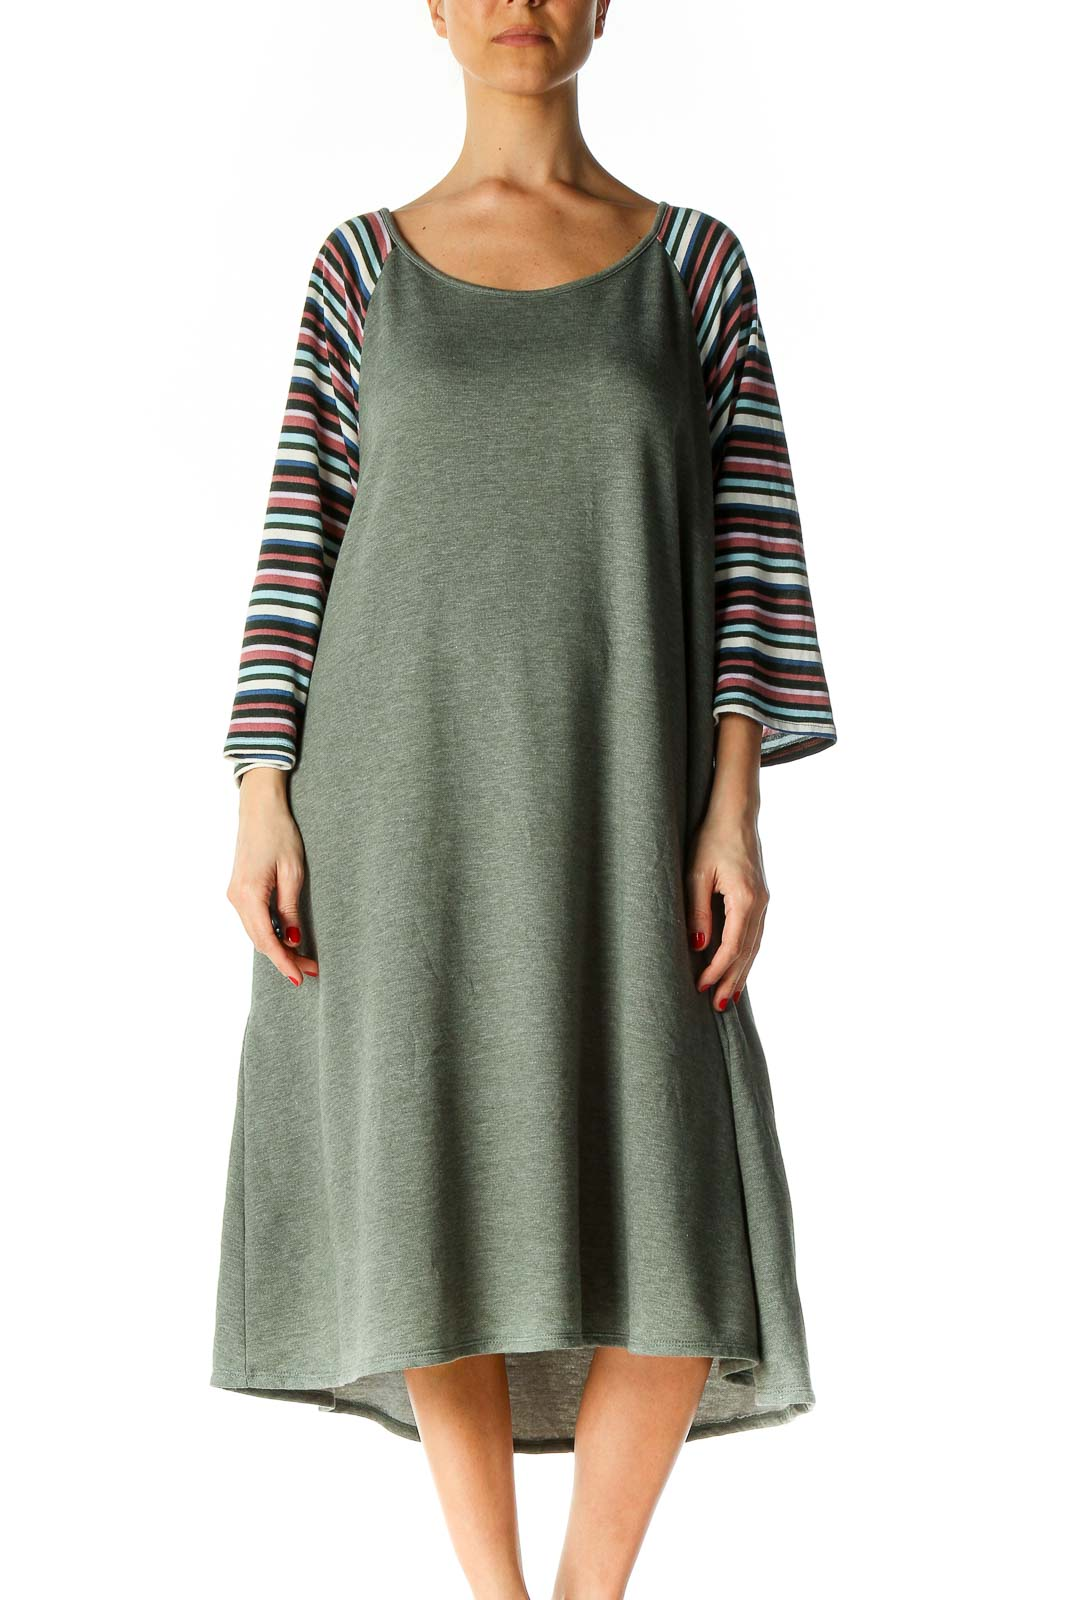 Green Textured Casual A-Line Dress Front